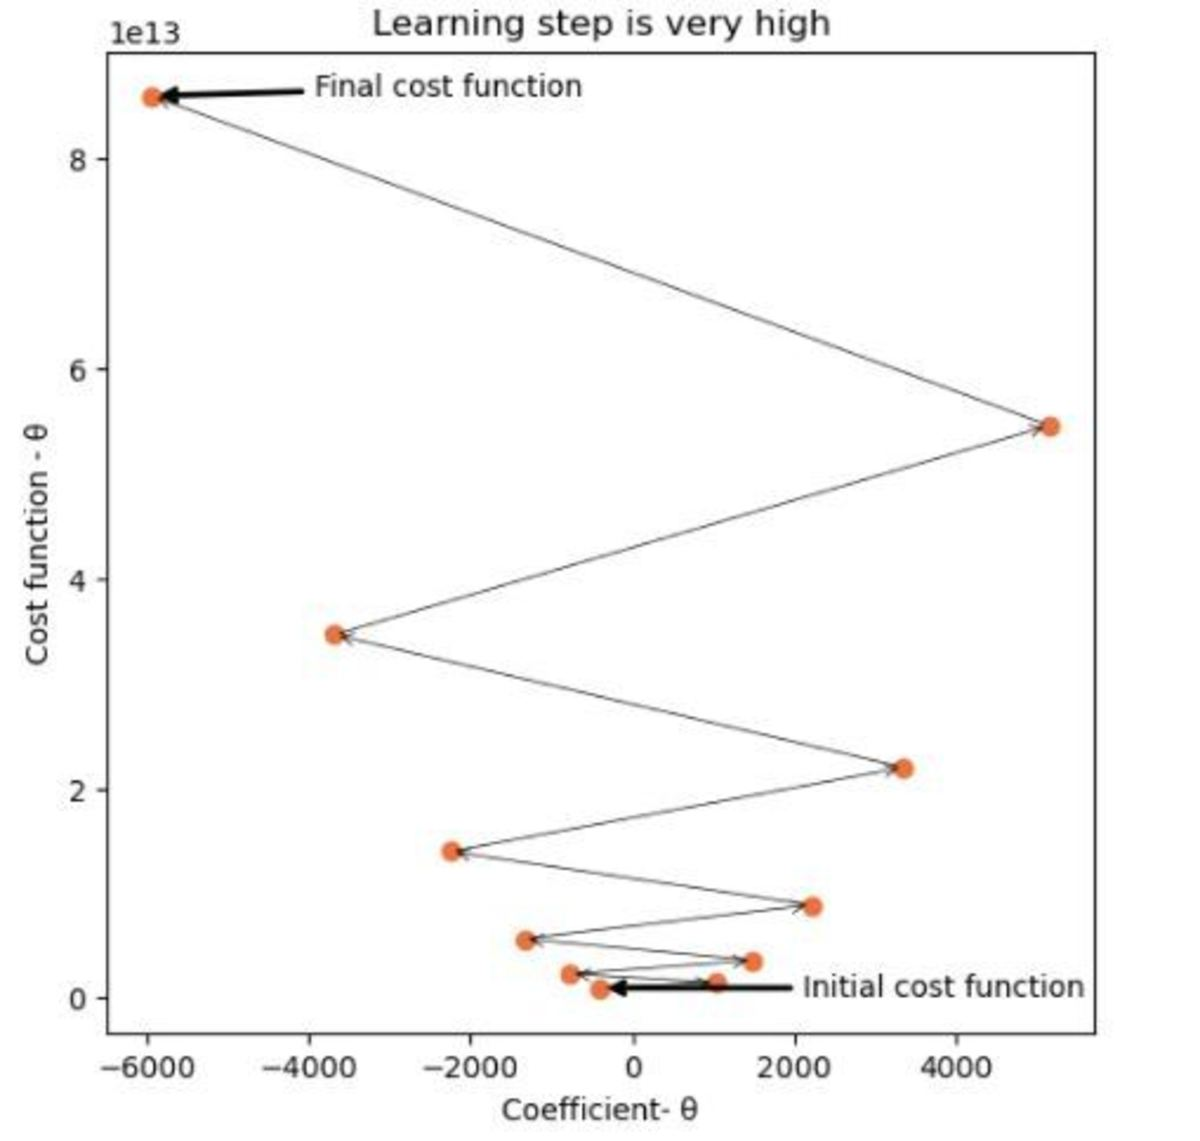 Learning step value is too high